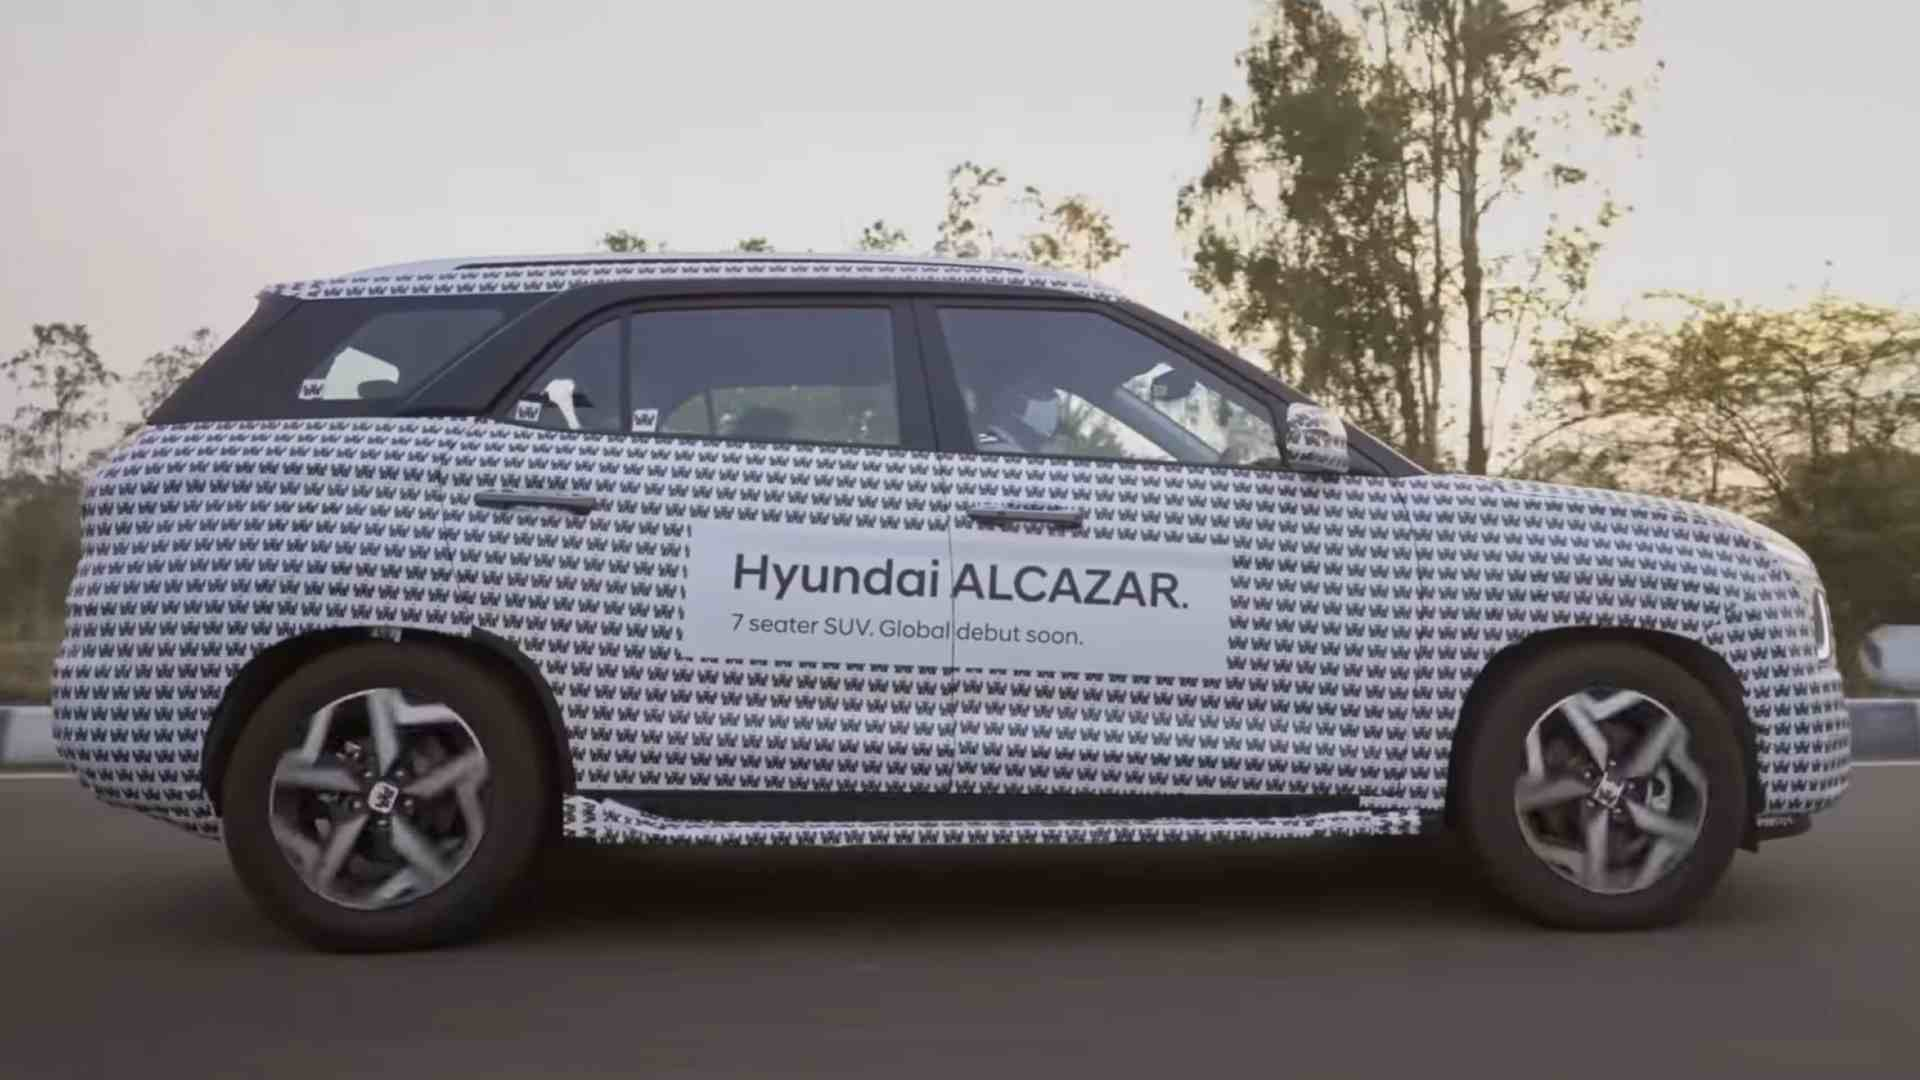 The increase in length with the Hyundai Alcazar necessitated by the addition of a third row of seats. Image: Hyundai